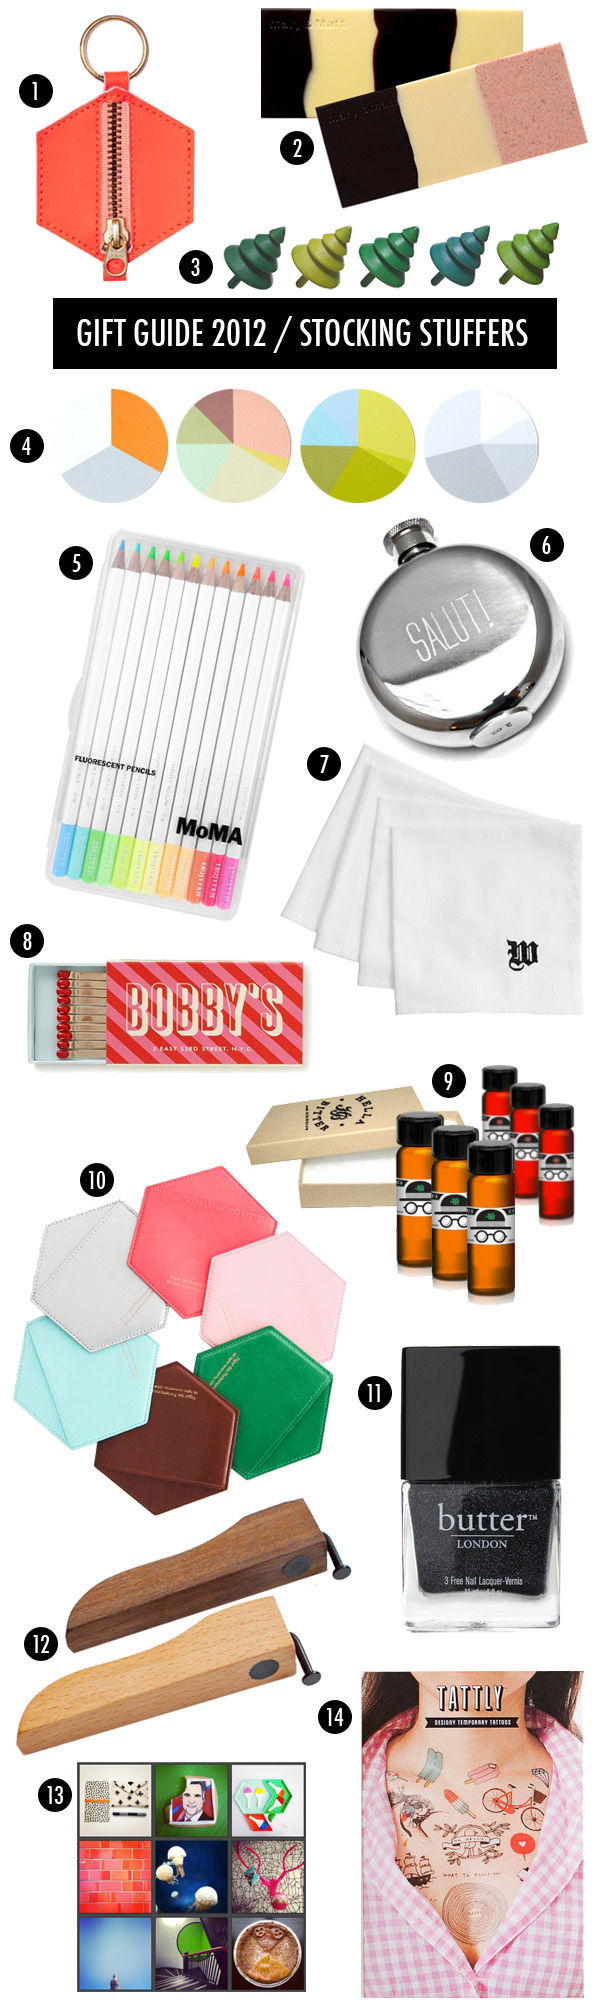 brooklyn bride holiday stocking stuffer giftguide 2012